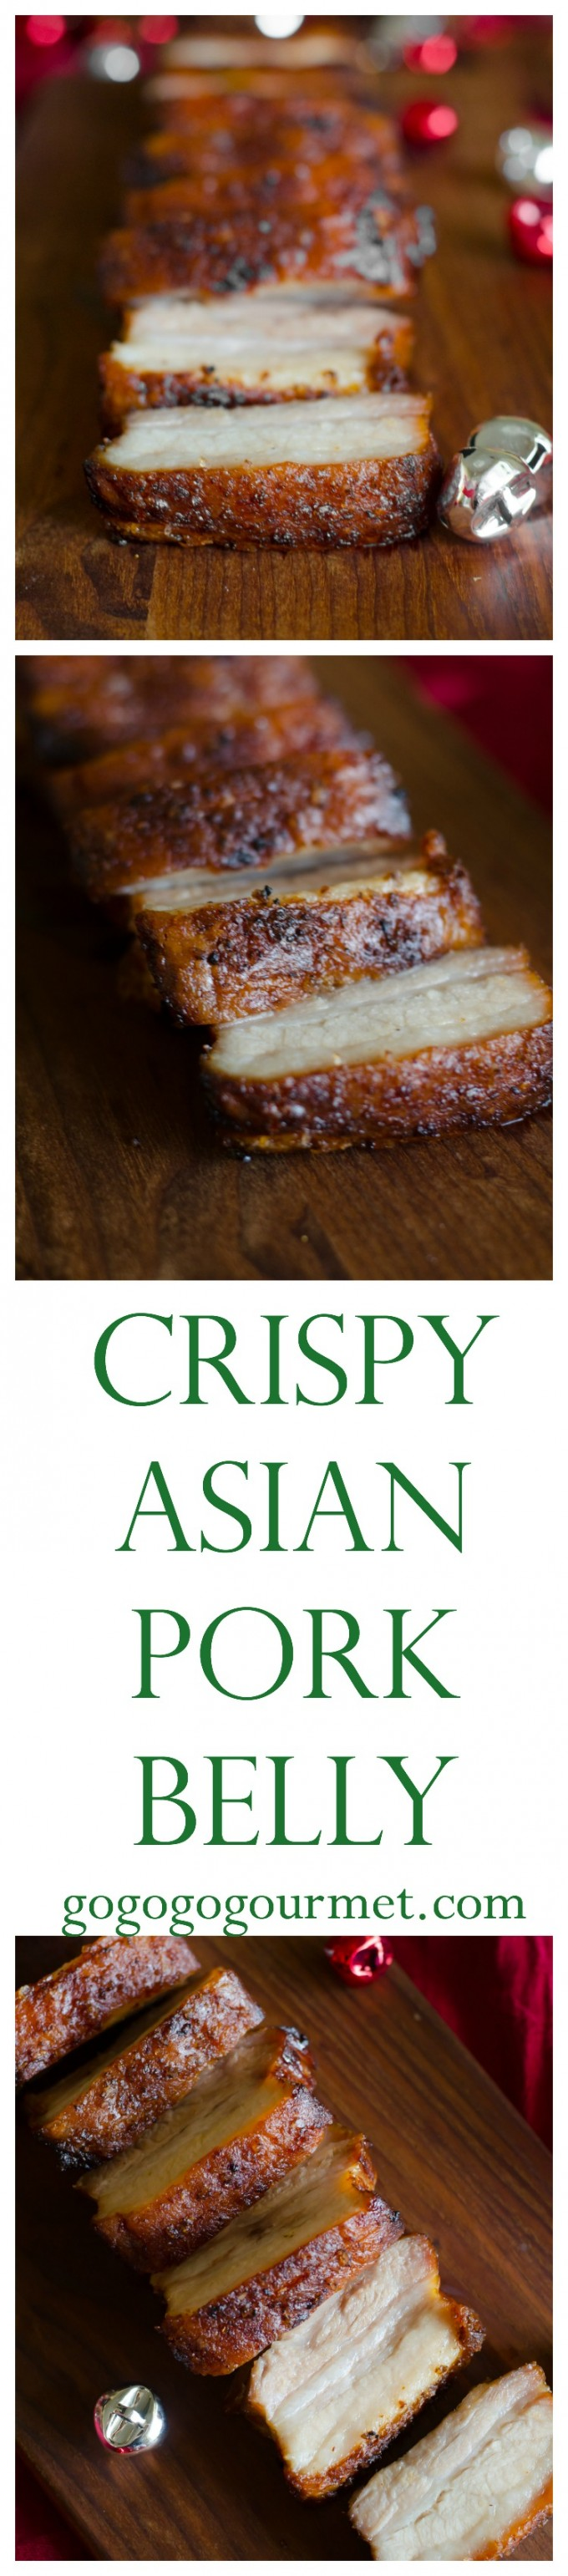 This Crispy Pork Belly is marinated in Asian flavors, then roasted with a salt crust for crispy skin and tender meat. No scoring required! via @gogogogourmet